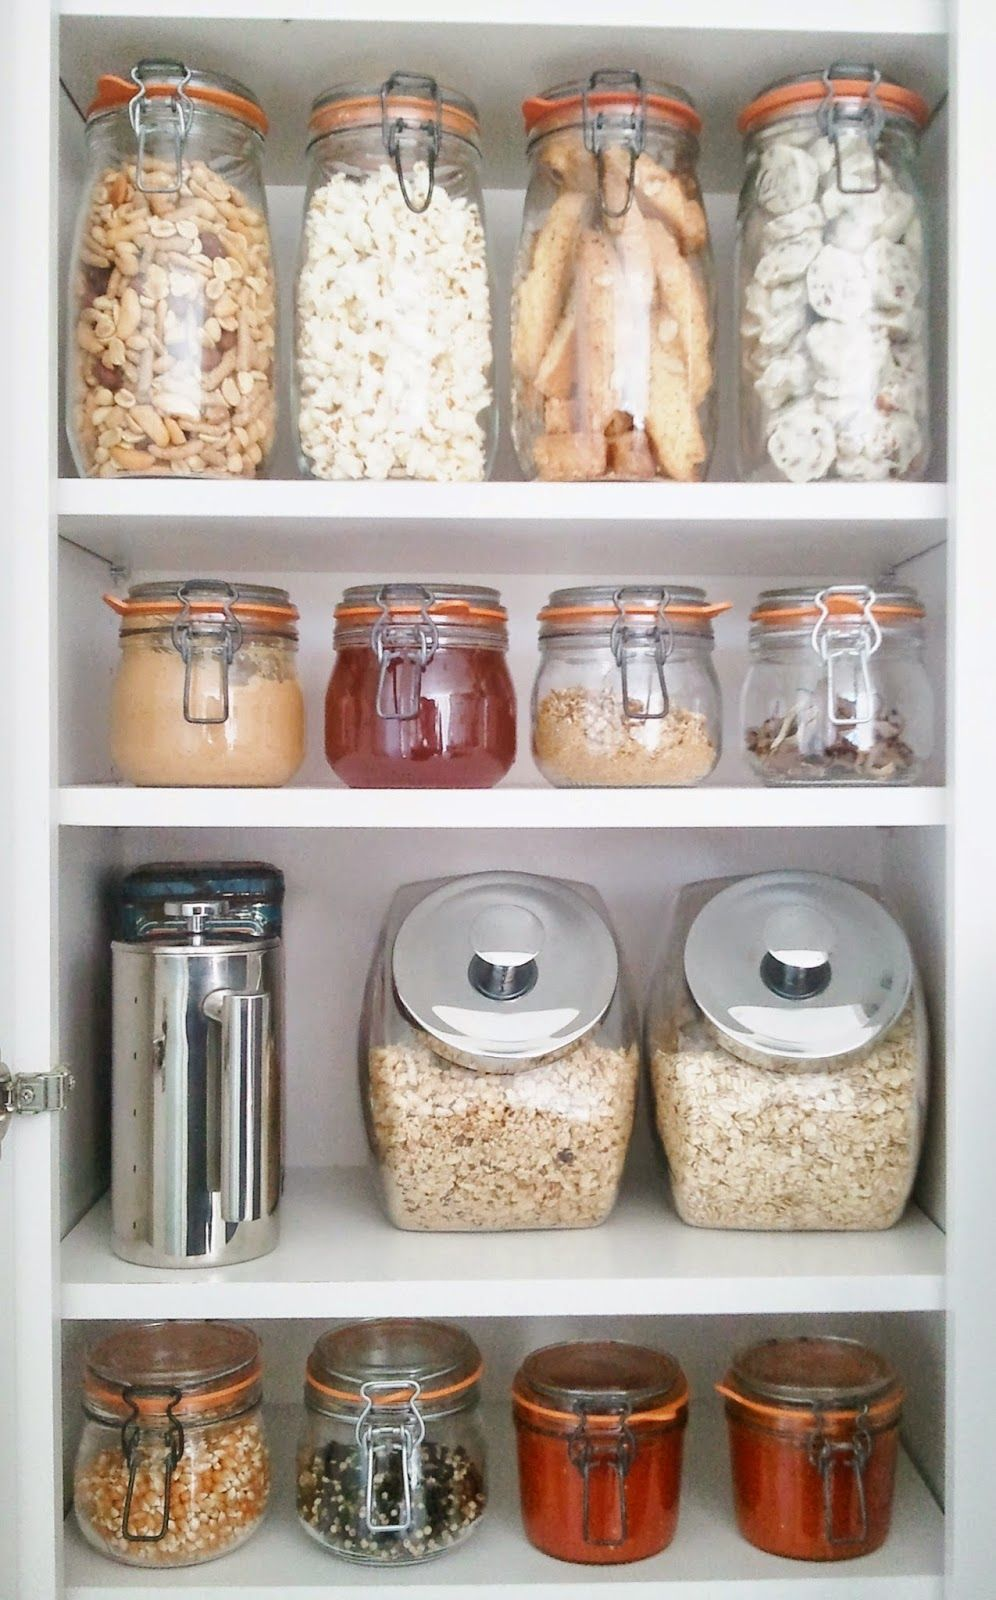 Zero waste home pantry lifestyle pinterest z ro - Bocal rangement cuisine ...